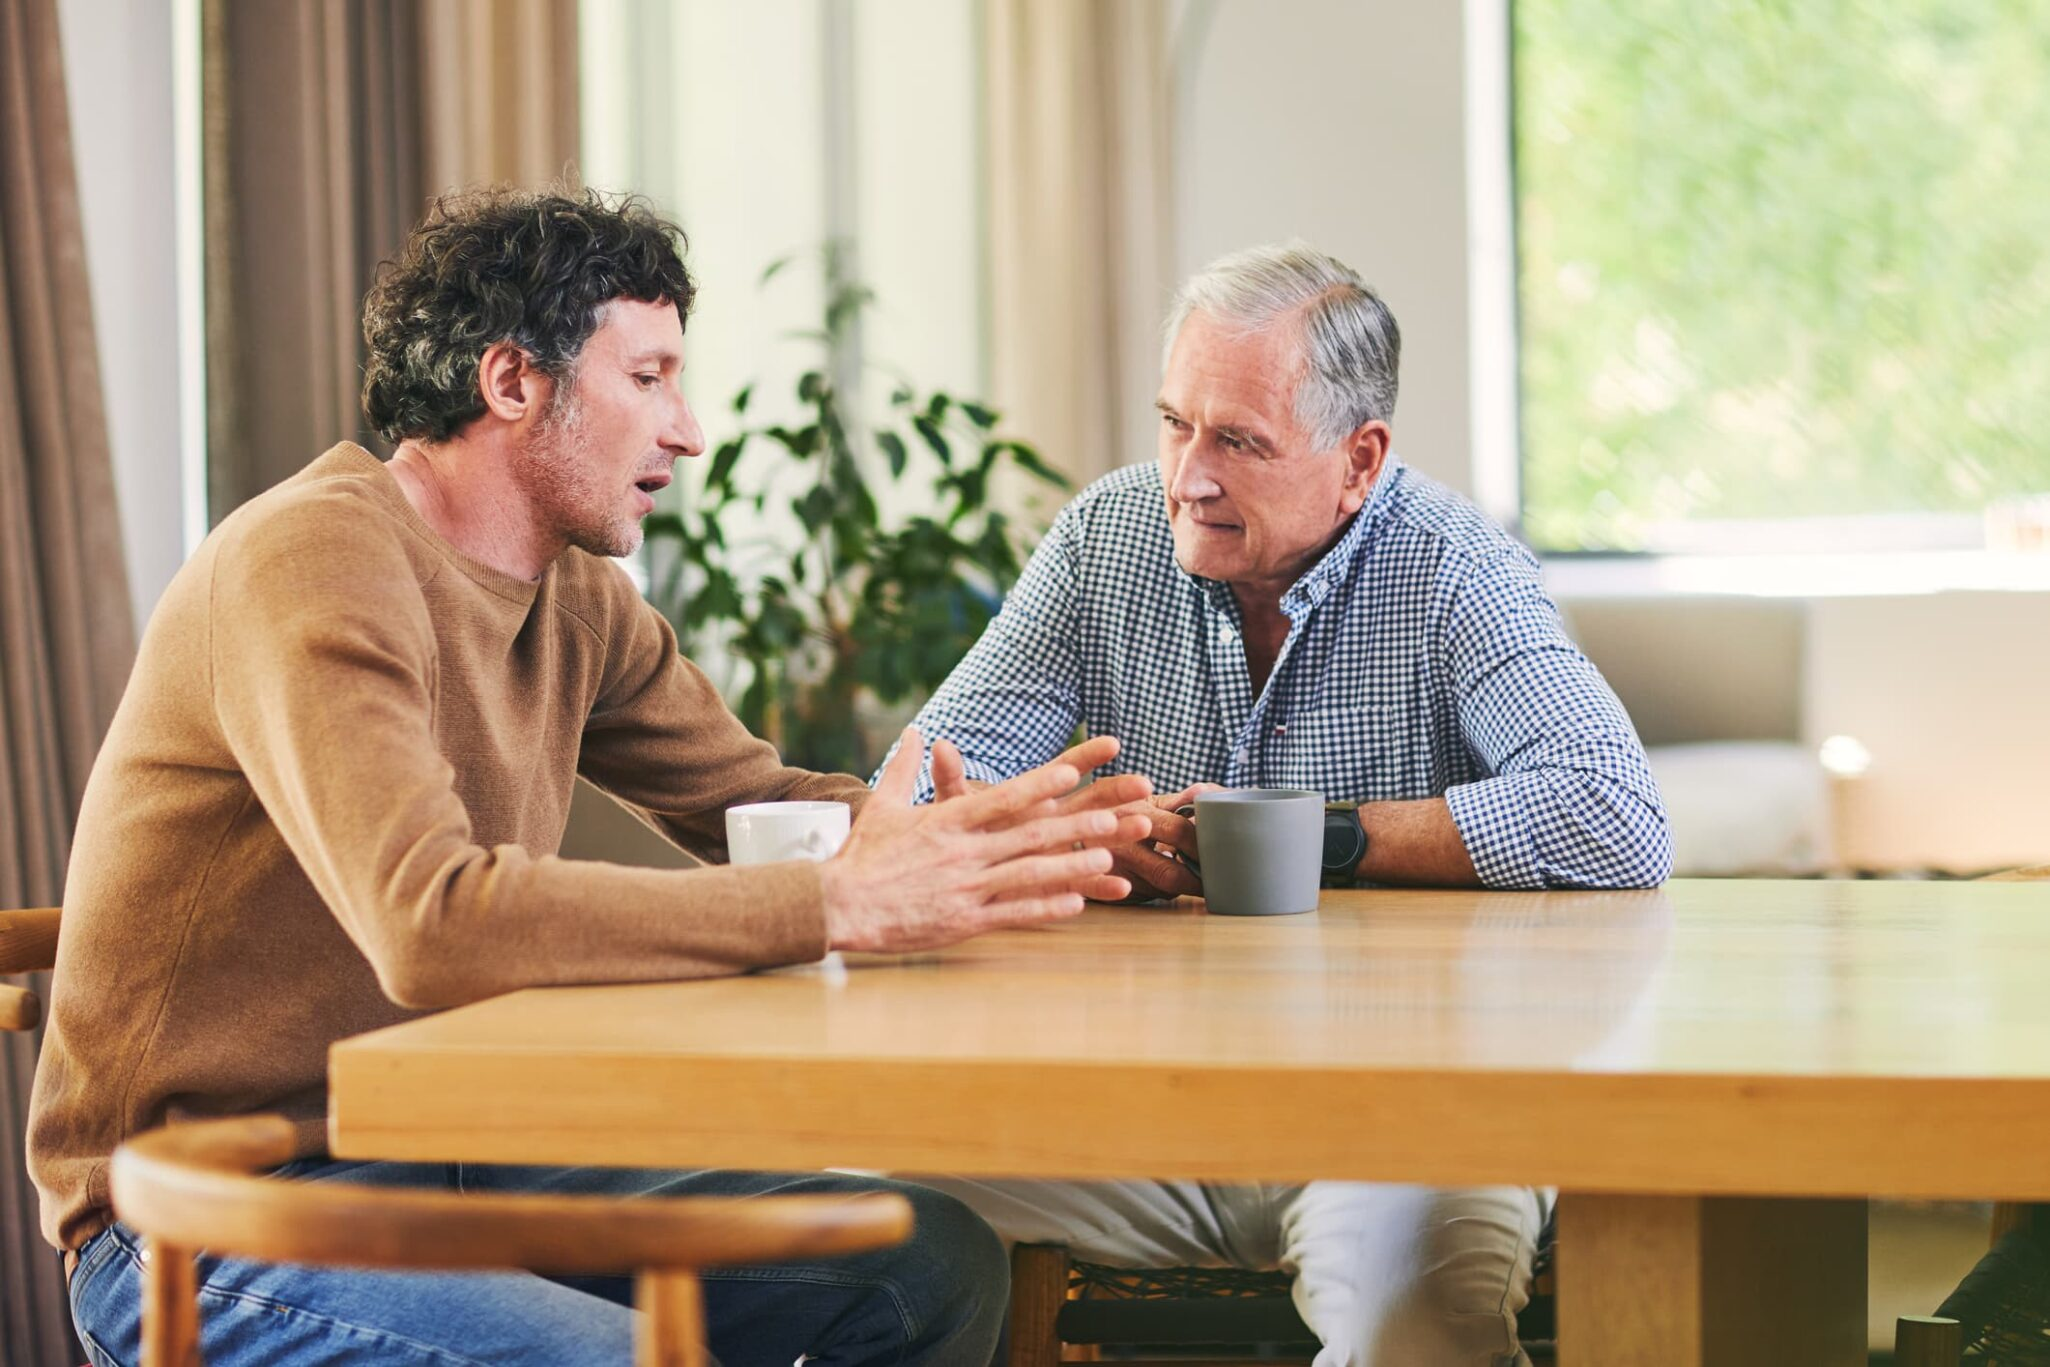 Father and son have a conversation at the dining room table.